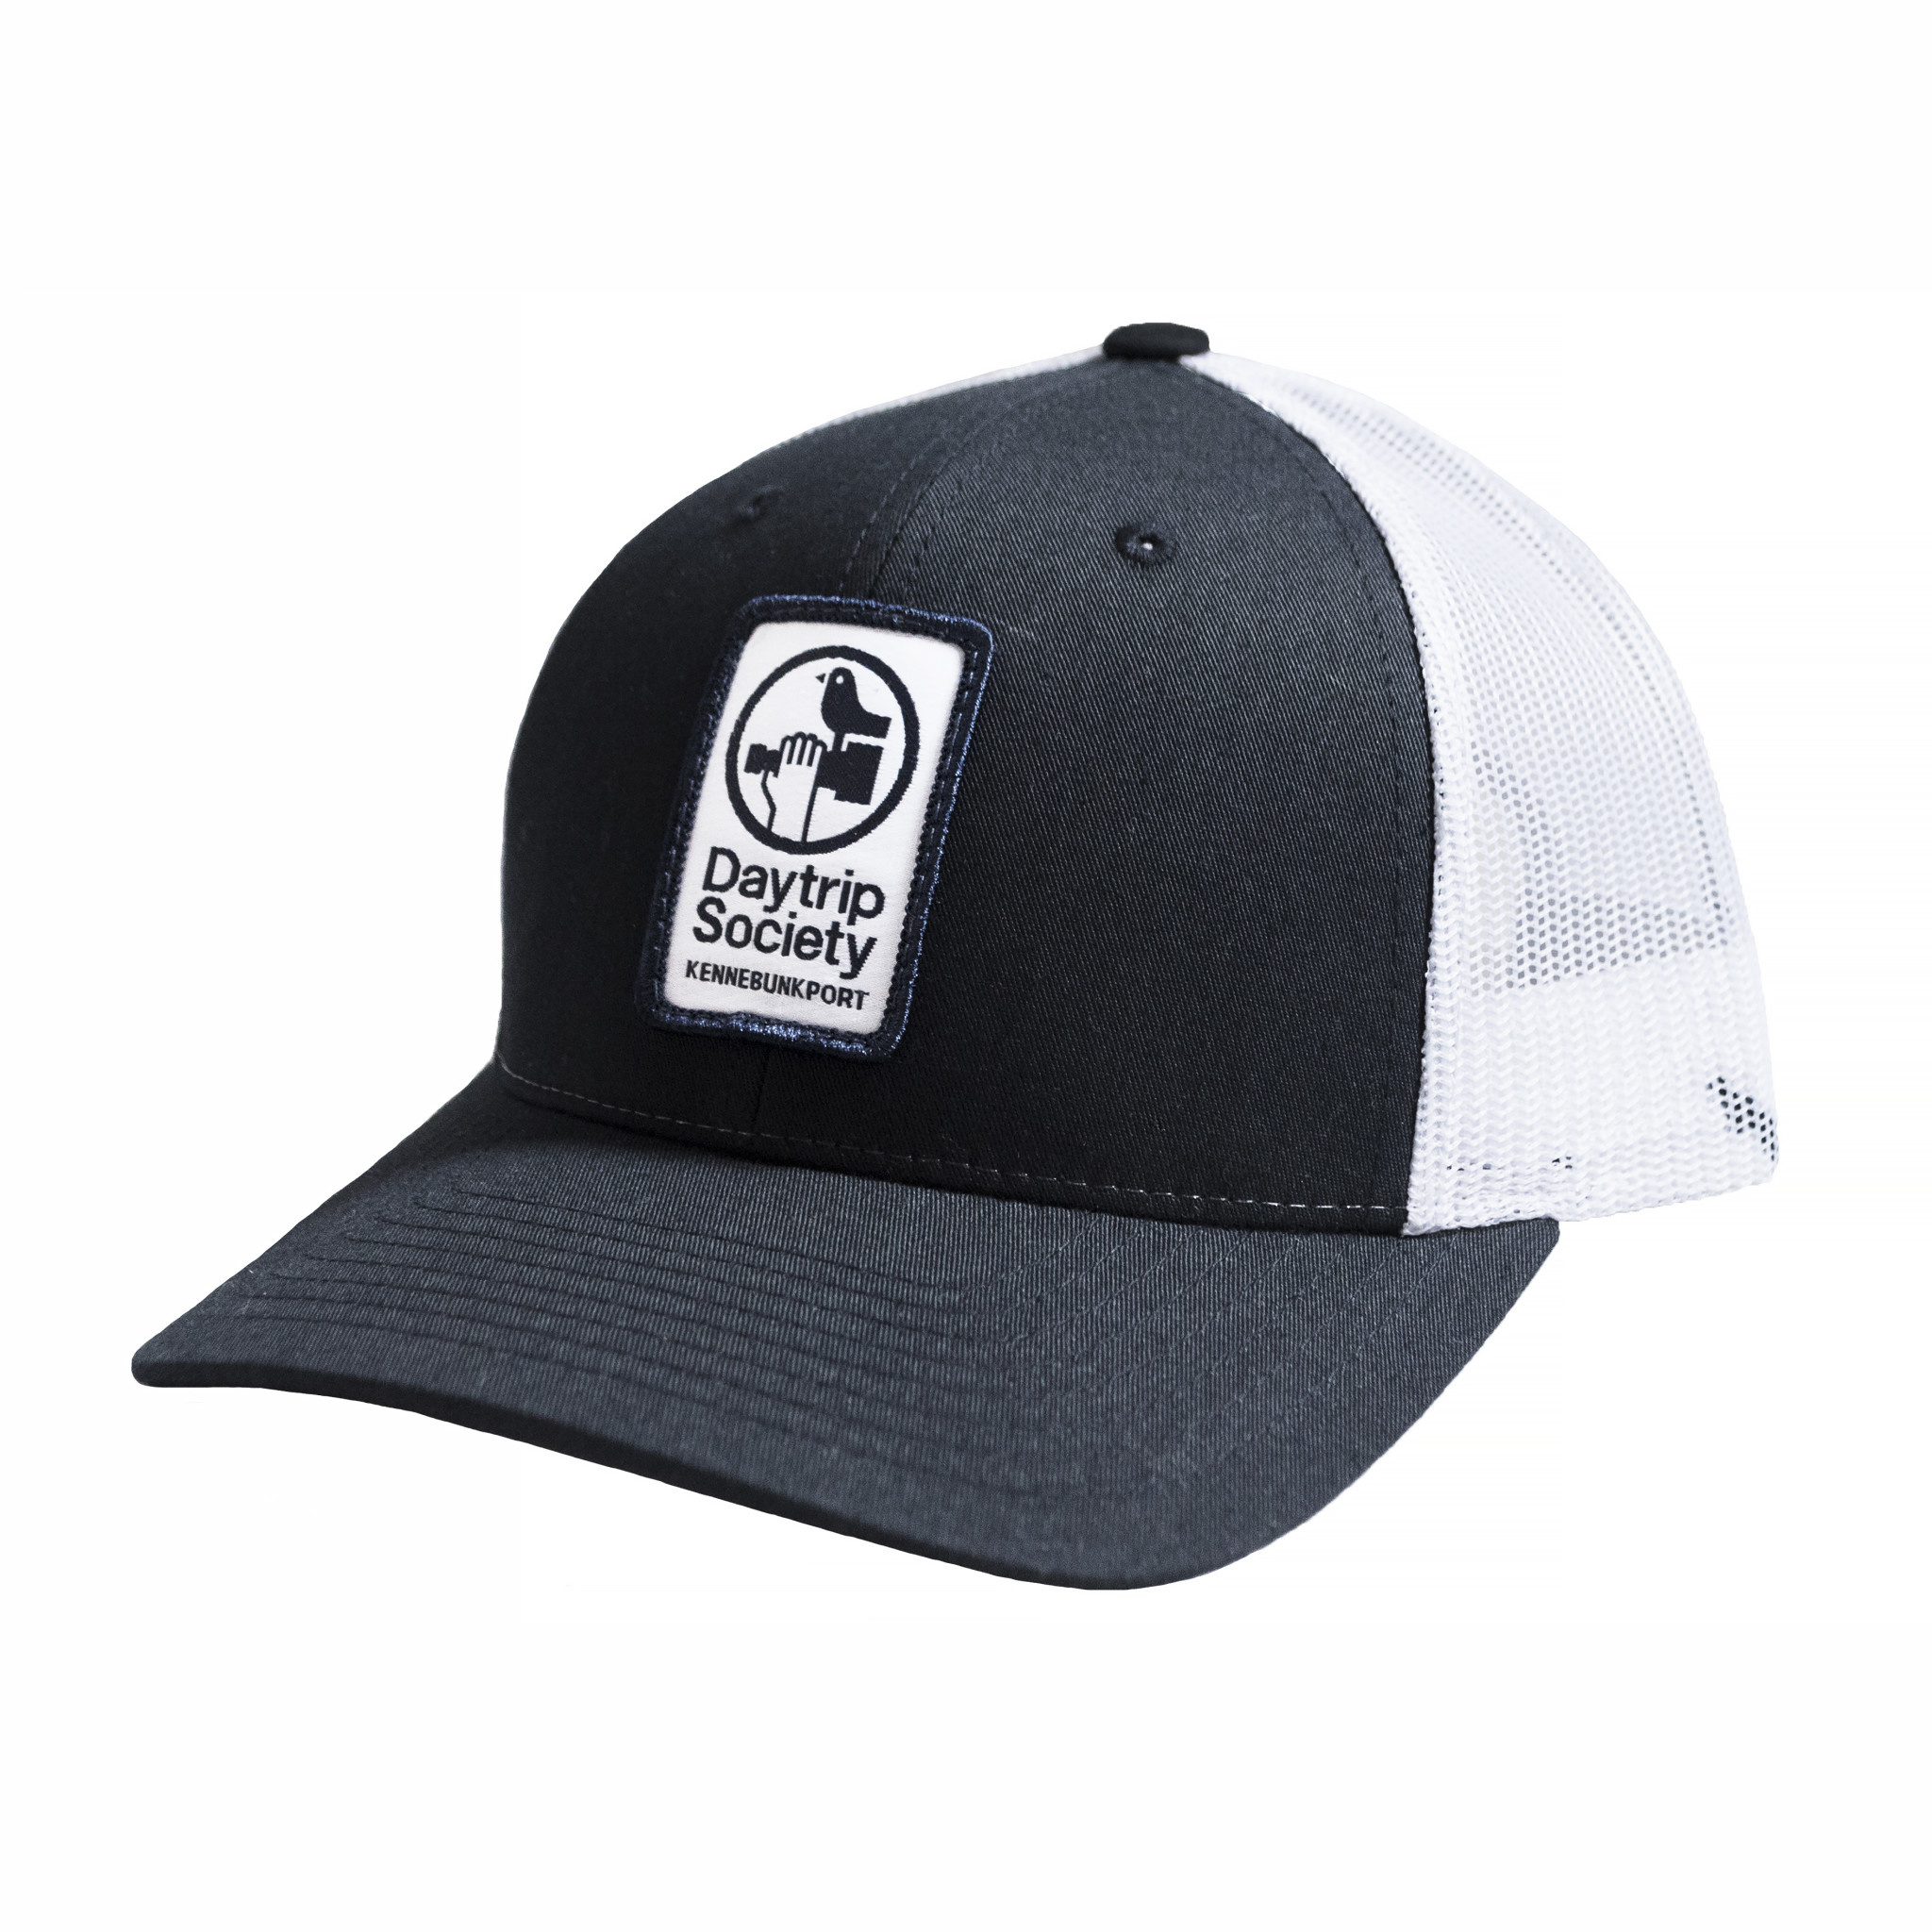 Daytrip Society Logo Trucker Hat - Navy - M/L